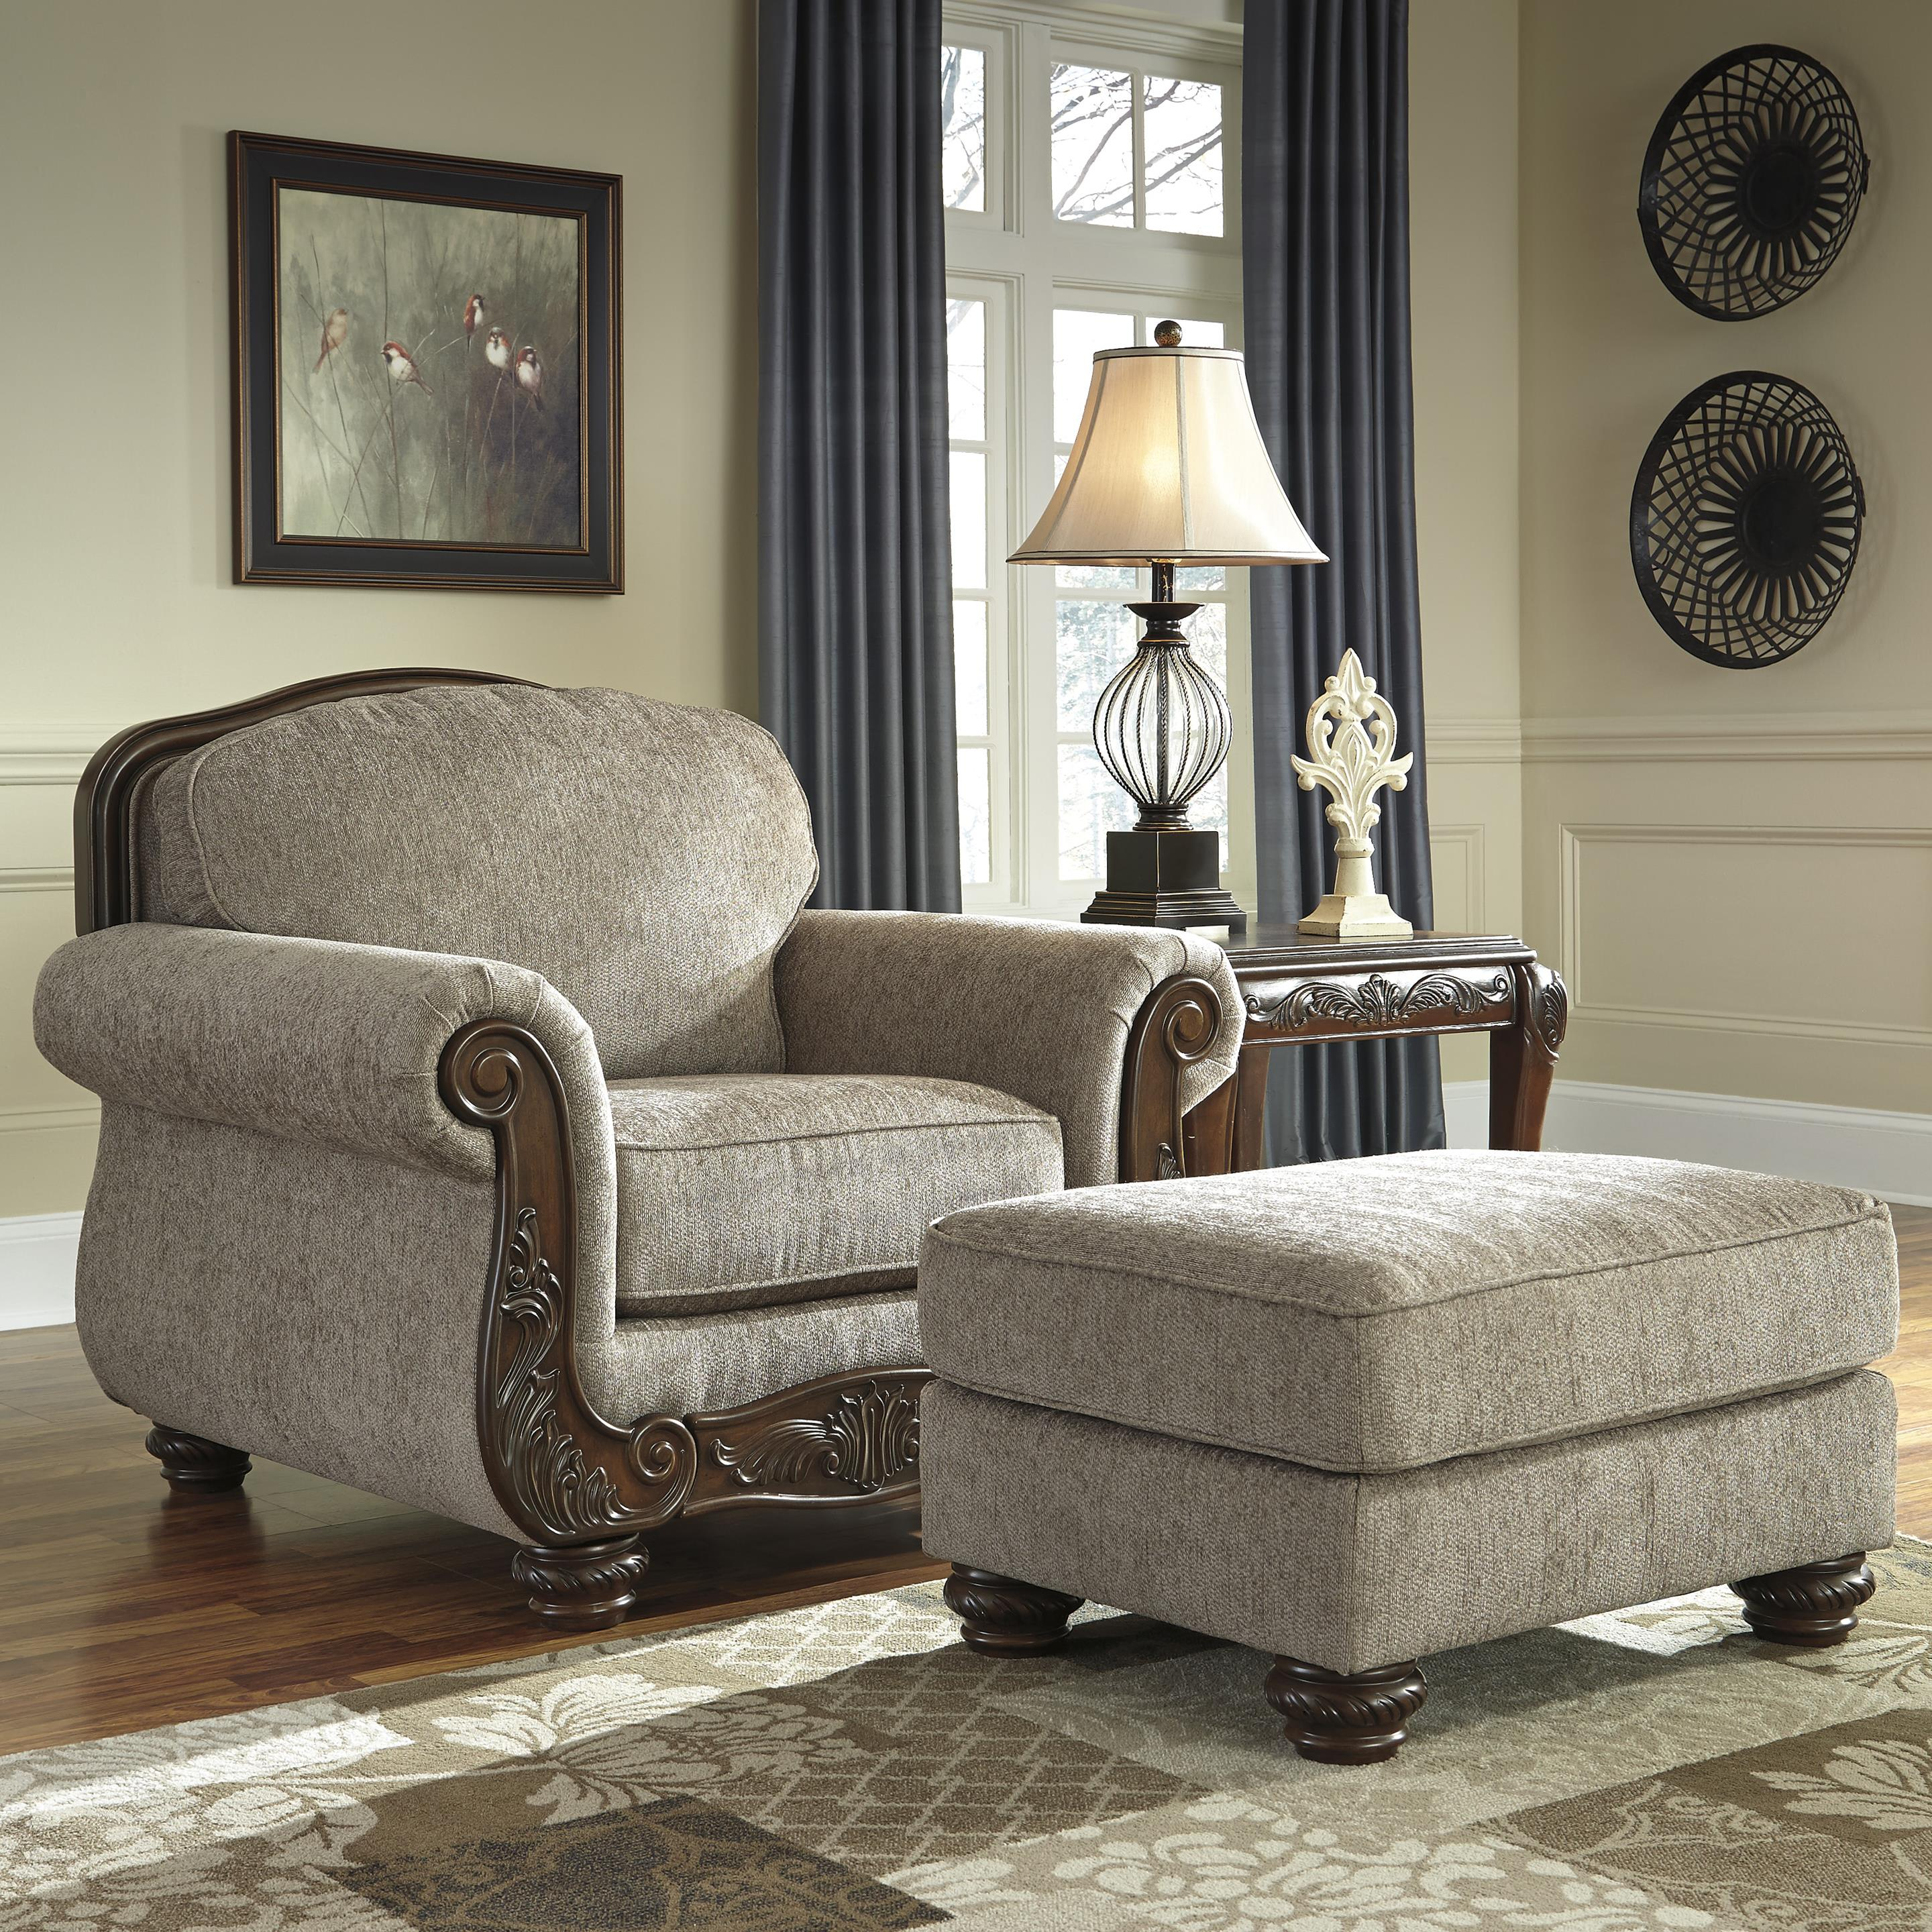 Signature Design by Ashley Cecilyn Chair & Ottoman - Item Number: 5760320+14